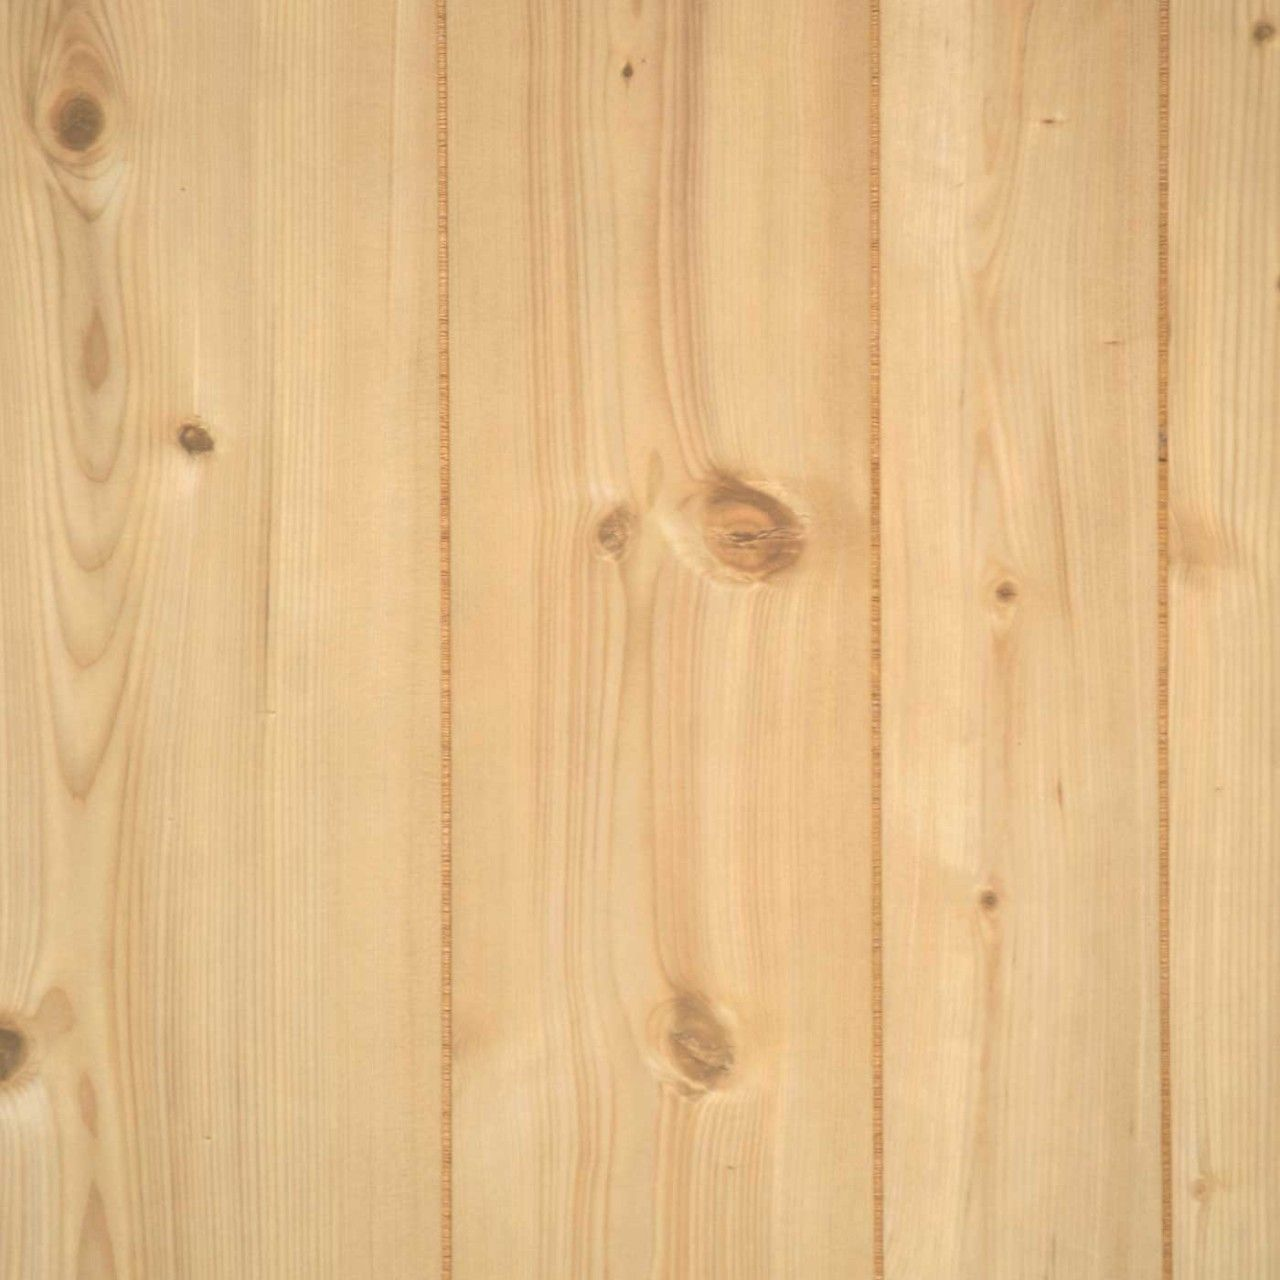 Rustic Pine Plywood Paneling 9-groove | Plywood panels